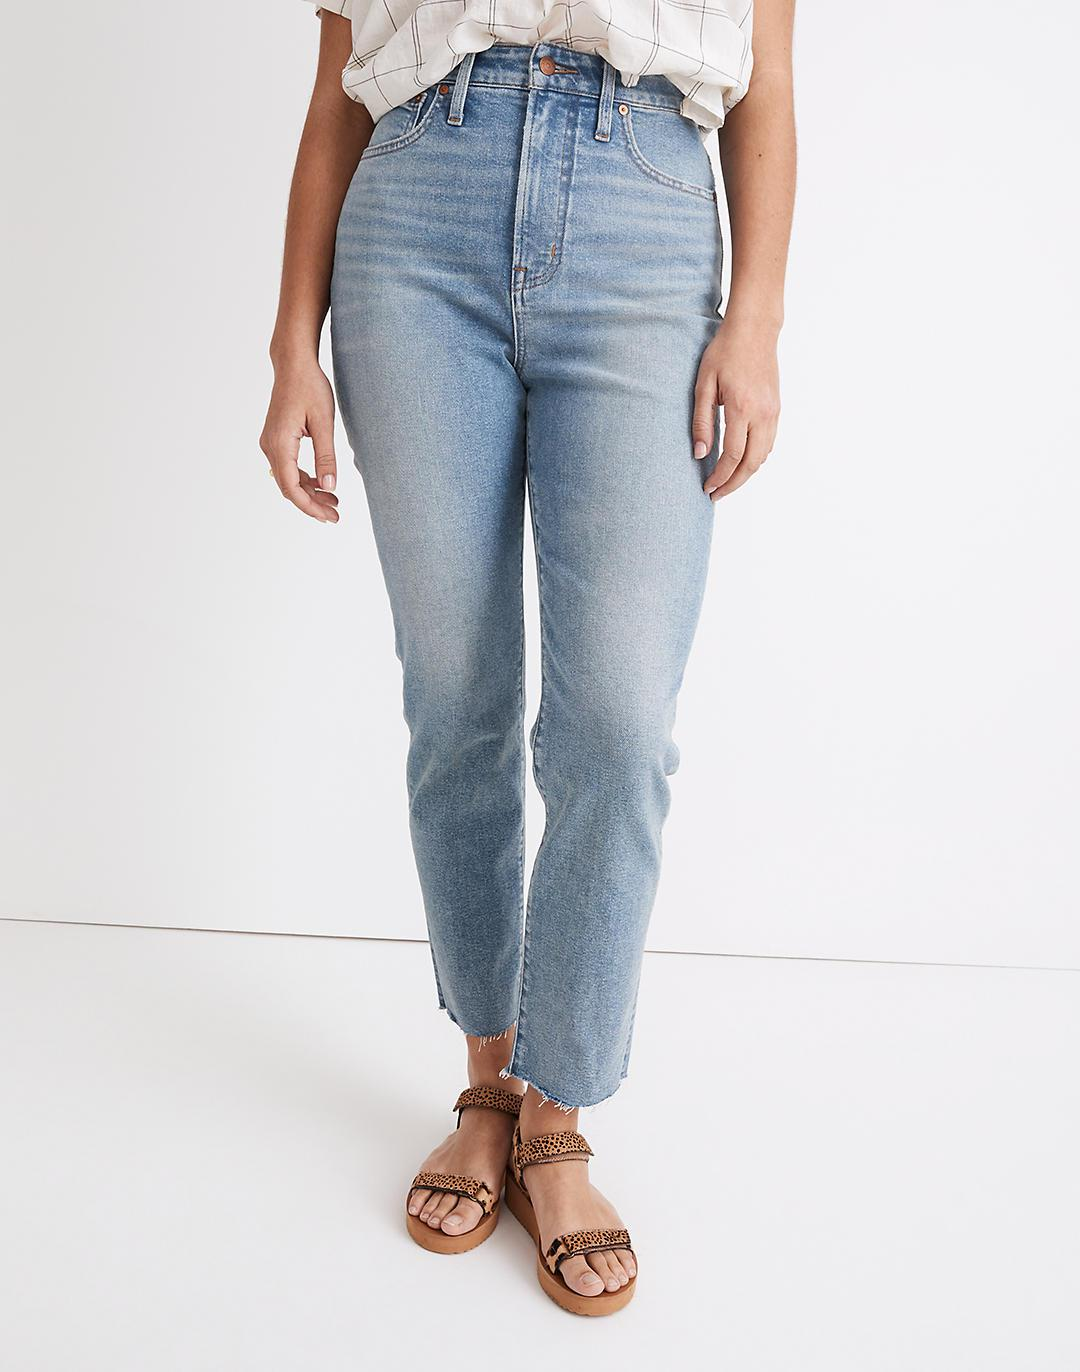 The Petite Curvy Momjean in Mayes Wash 3